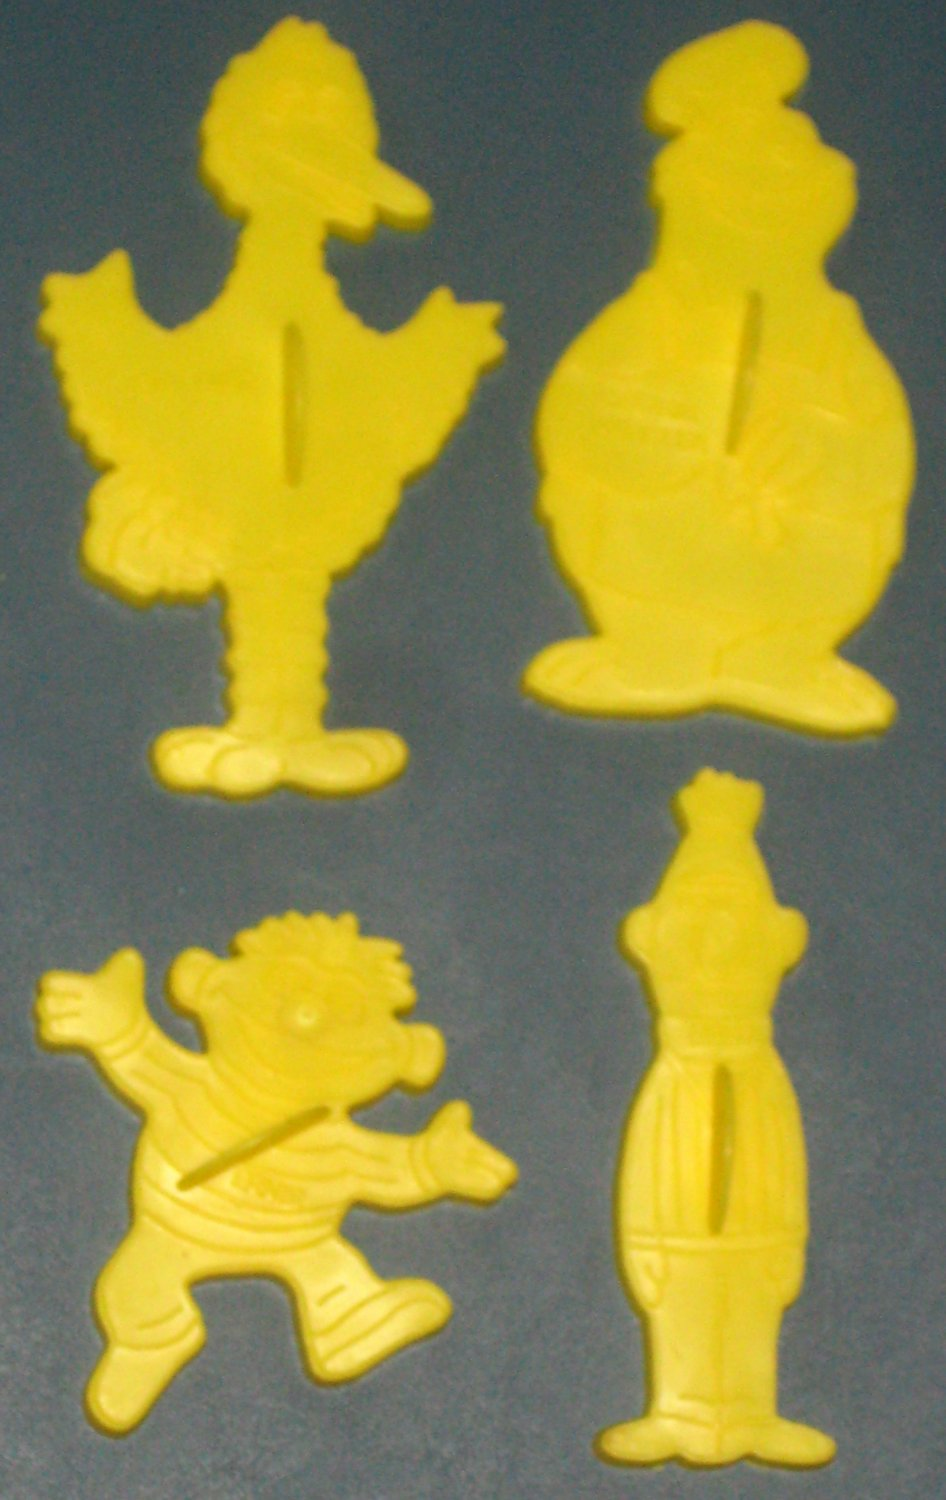 SOLD Sesame Street Wilton Cookie Cutter Set of 4 Muppets Big Bird Ernie Bert Cookie Monster 509-2016